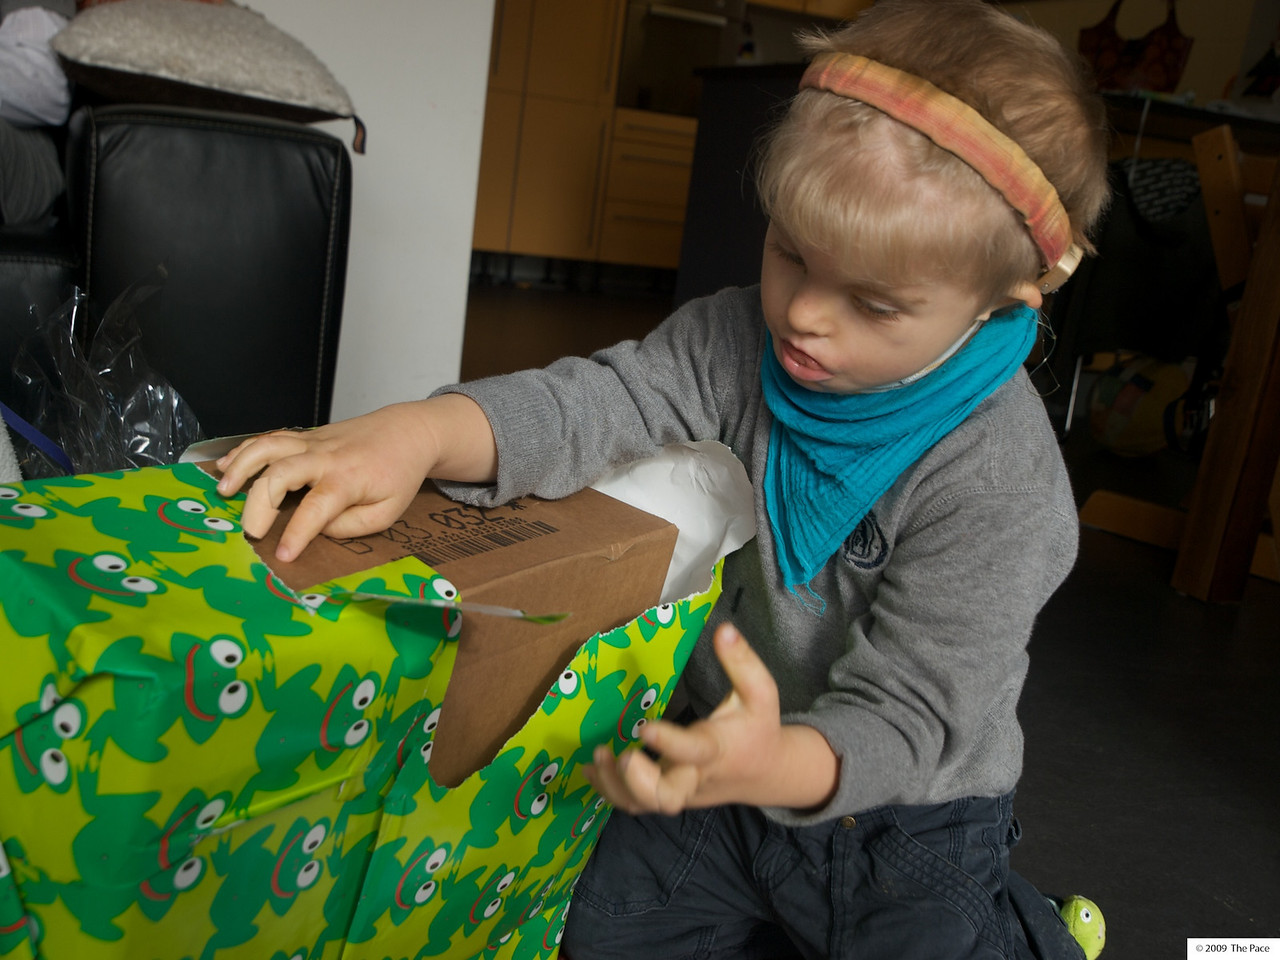 Monday 19th Oct 2009 - Cai now looks a bit more serious about his unwrapping job